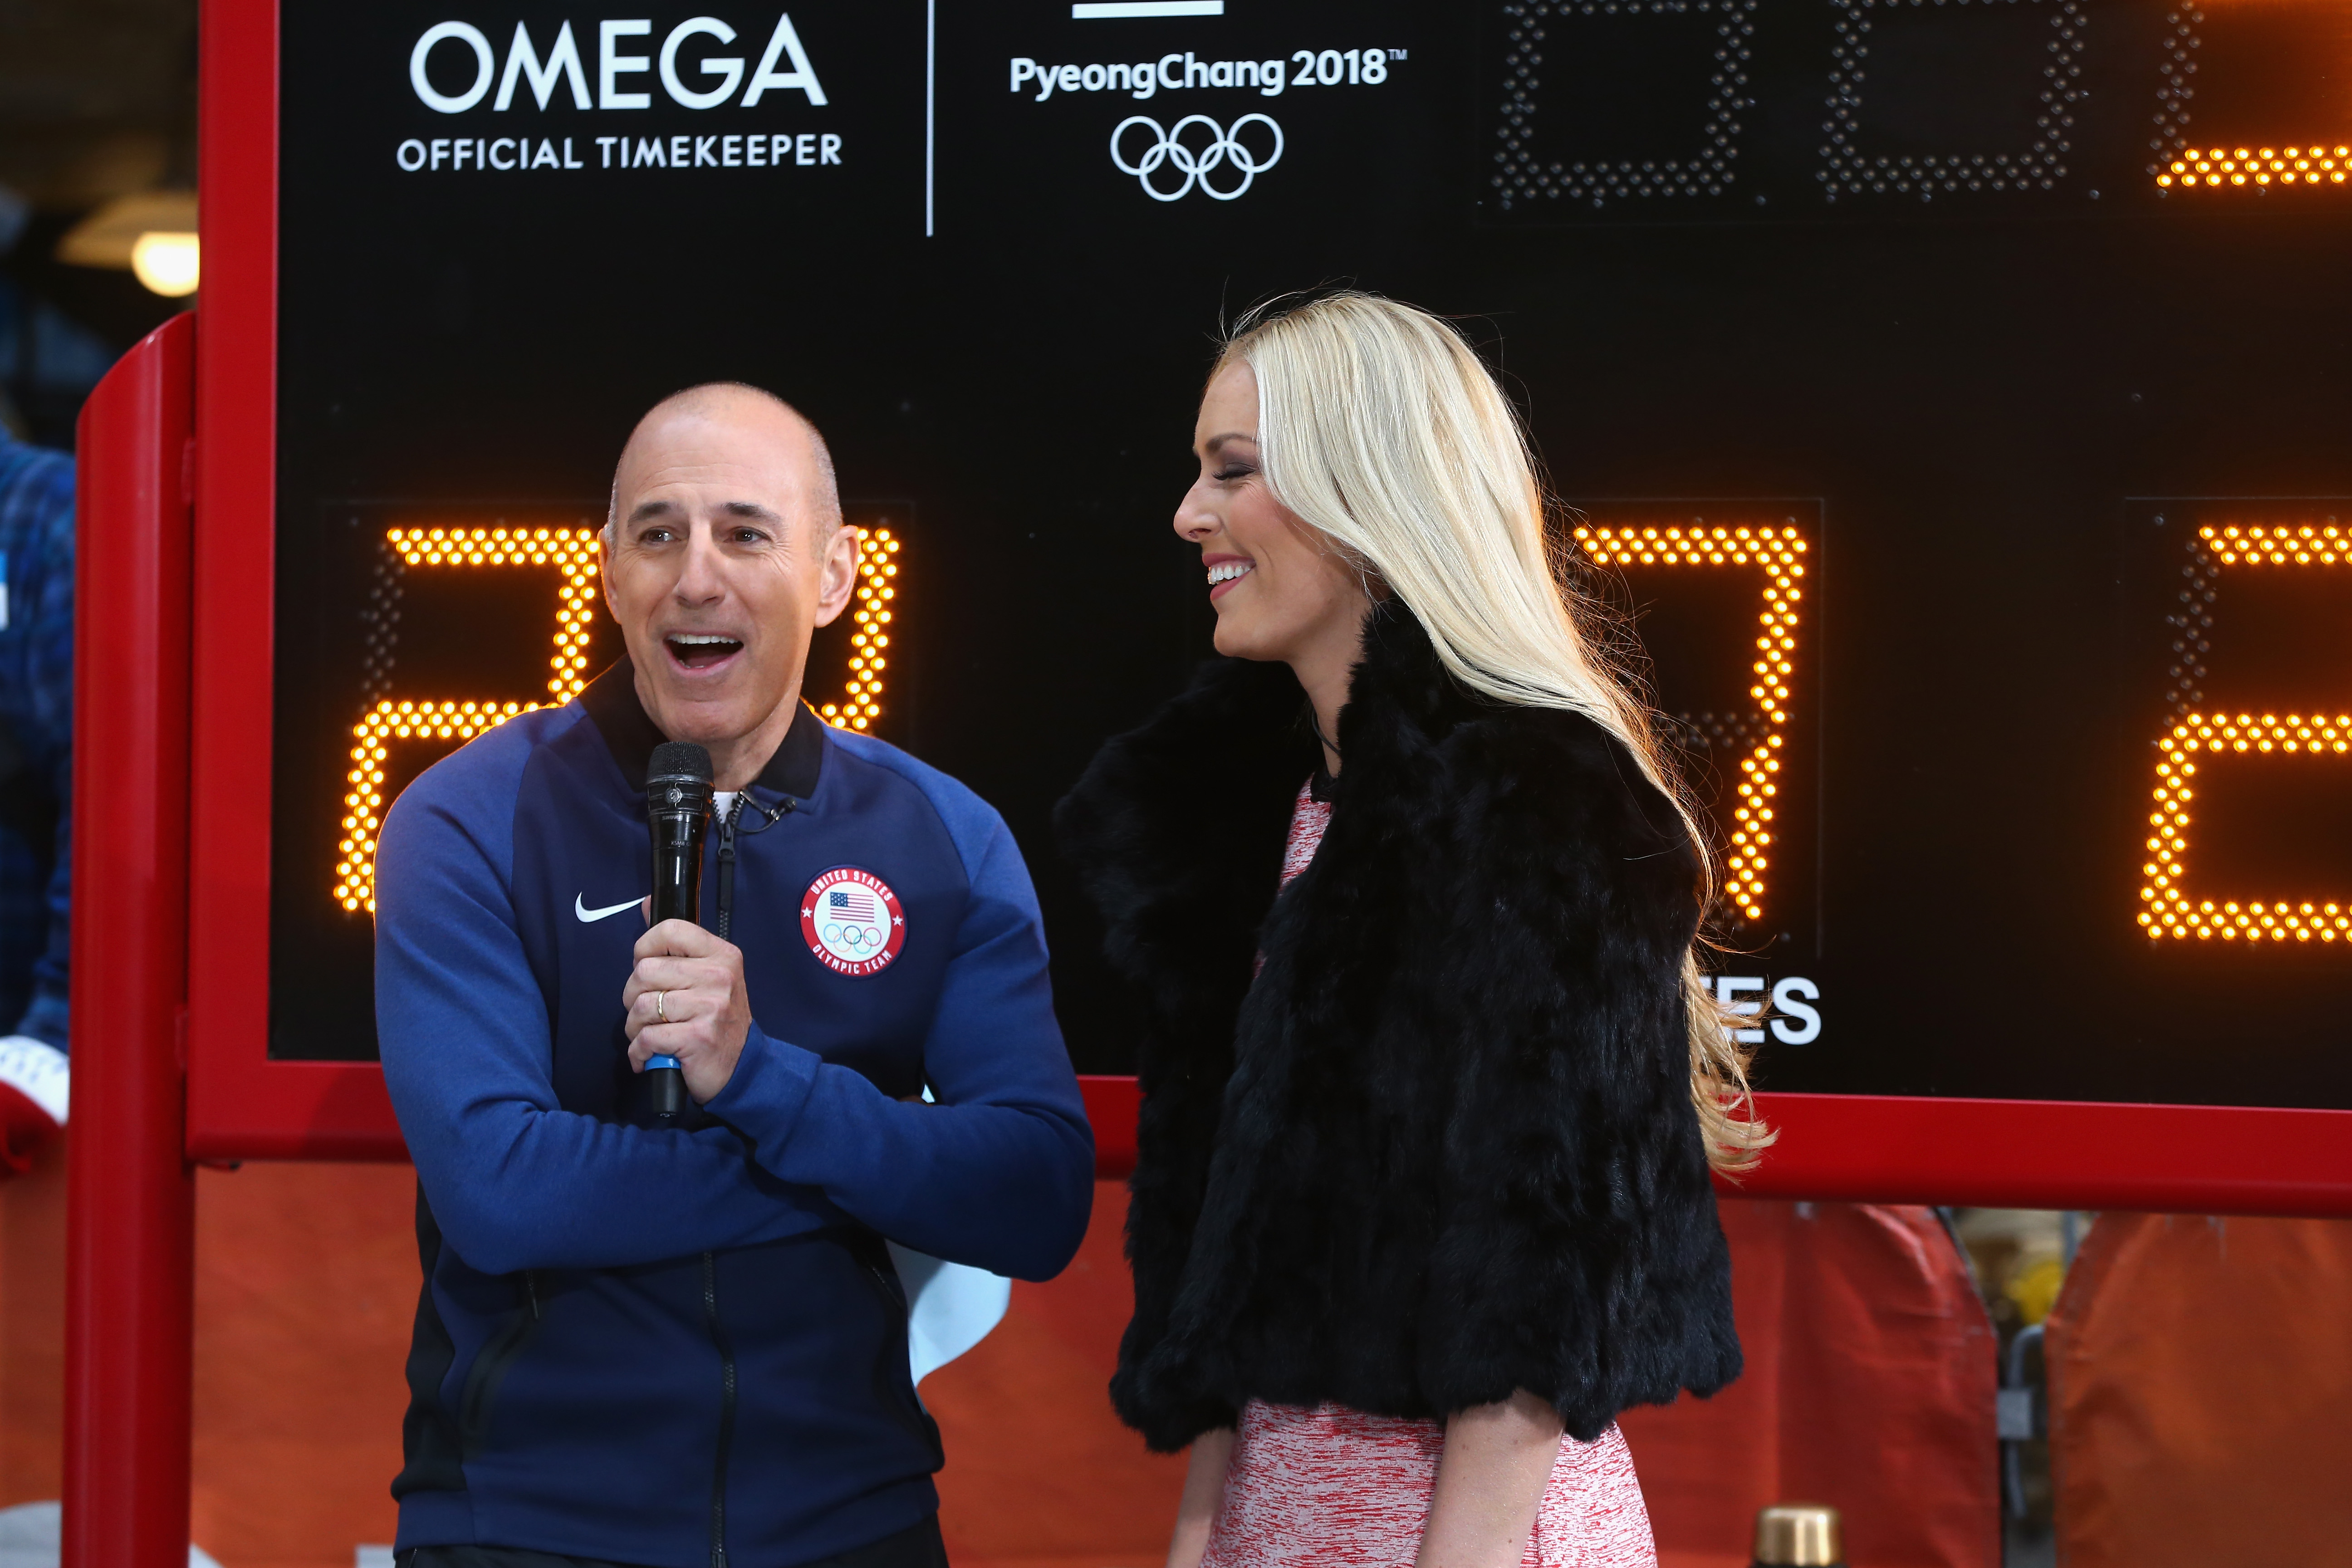 Matt Lauer laughs in interview with Lindsey Vonn